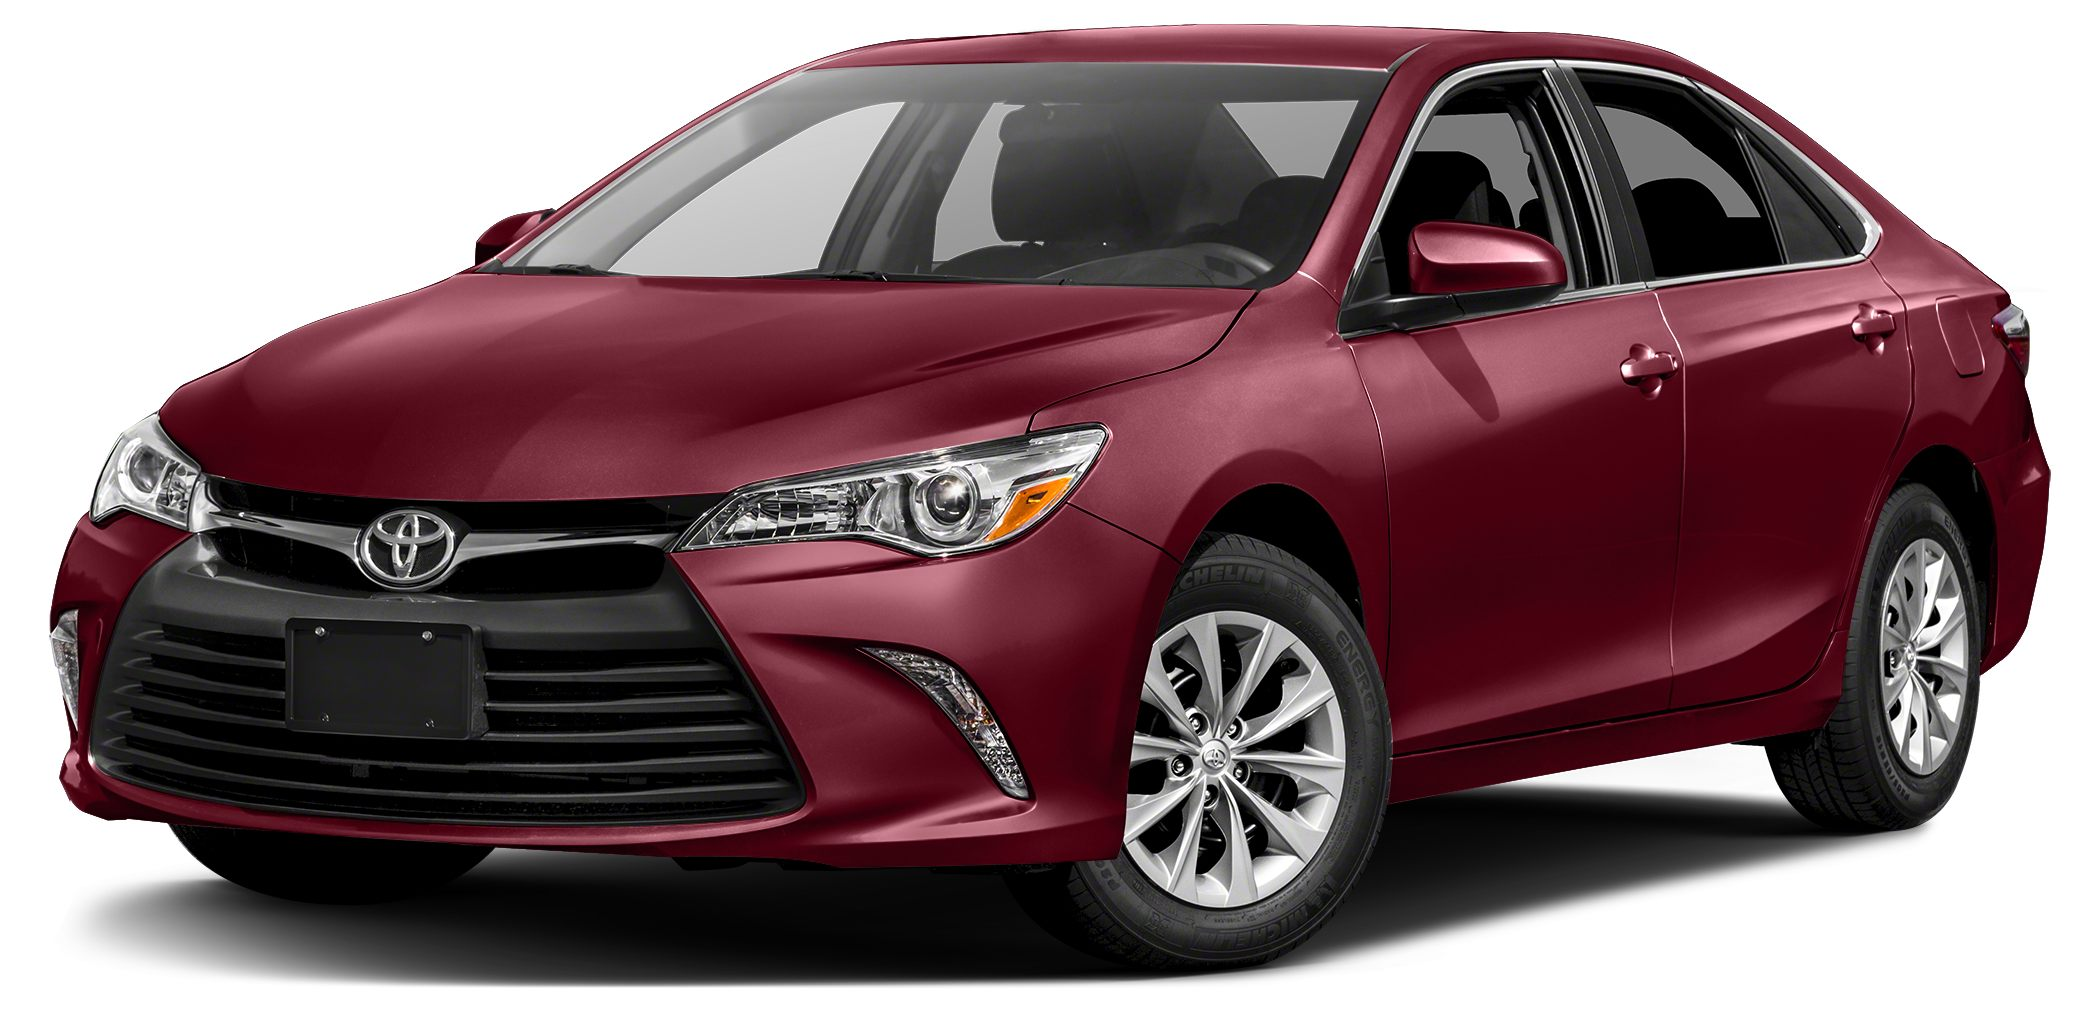 2017 Toyota Camry XLE Heated Leather Seats Dual Zone AC Premium Sound System Alloy Wheels Bac